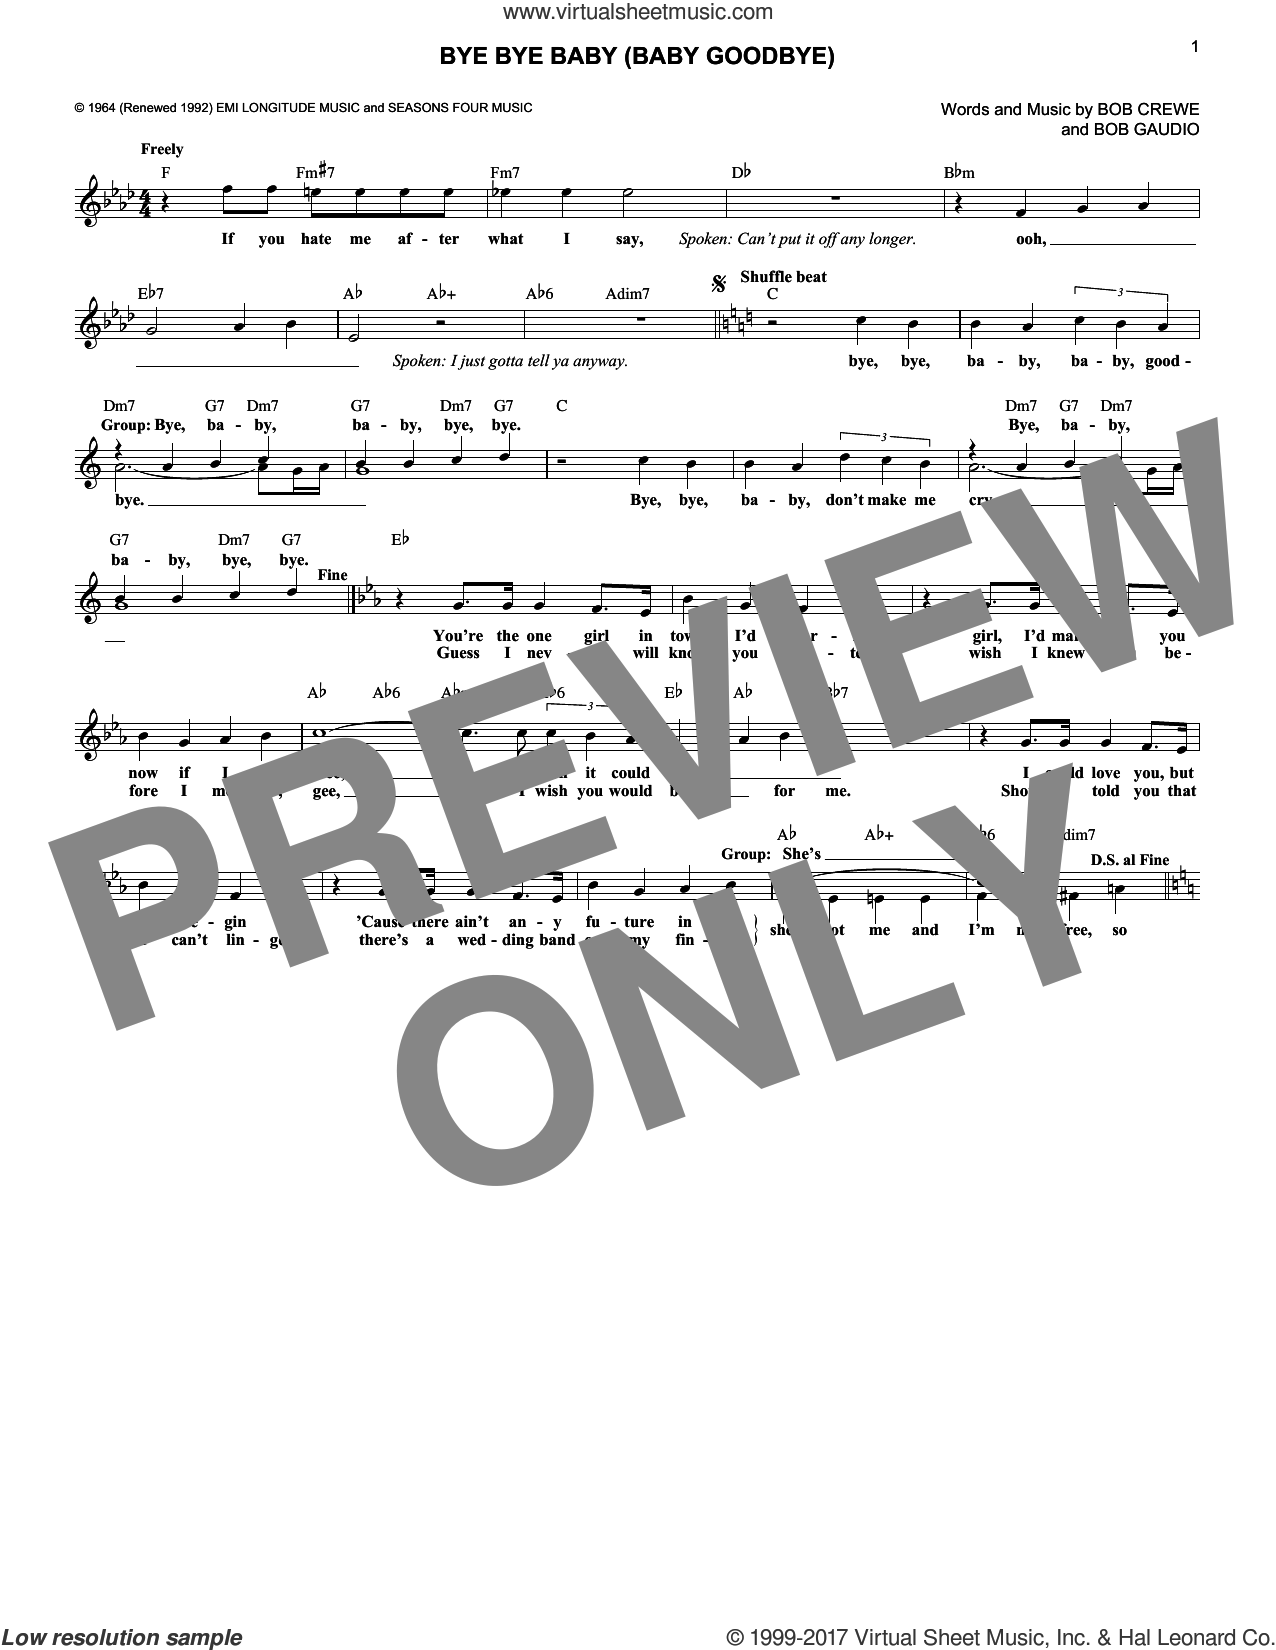 Bye Bye Baby (Baby Goodbye) sheet music for voice and other instruments (fake book) by The Four Seasons, Bob Crewe and Bob Gaudio, intermediate skill level